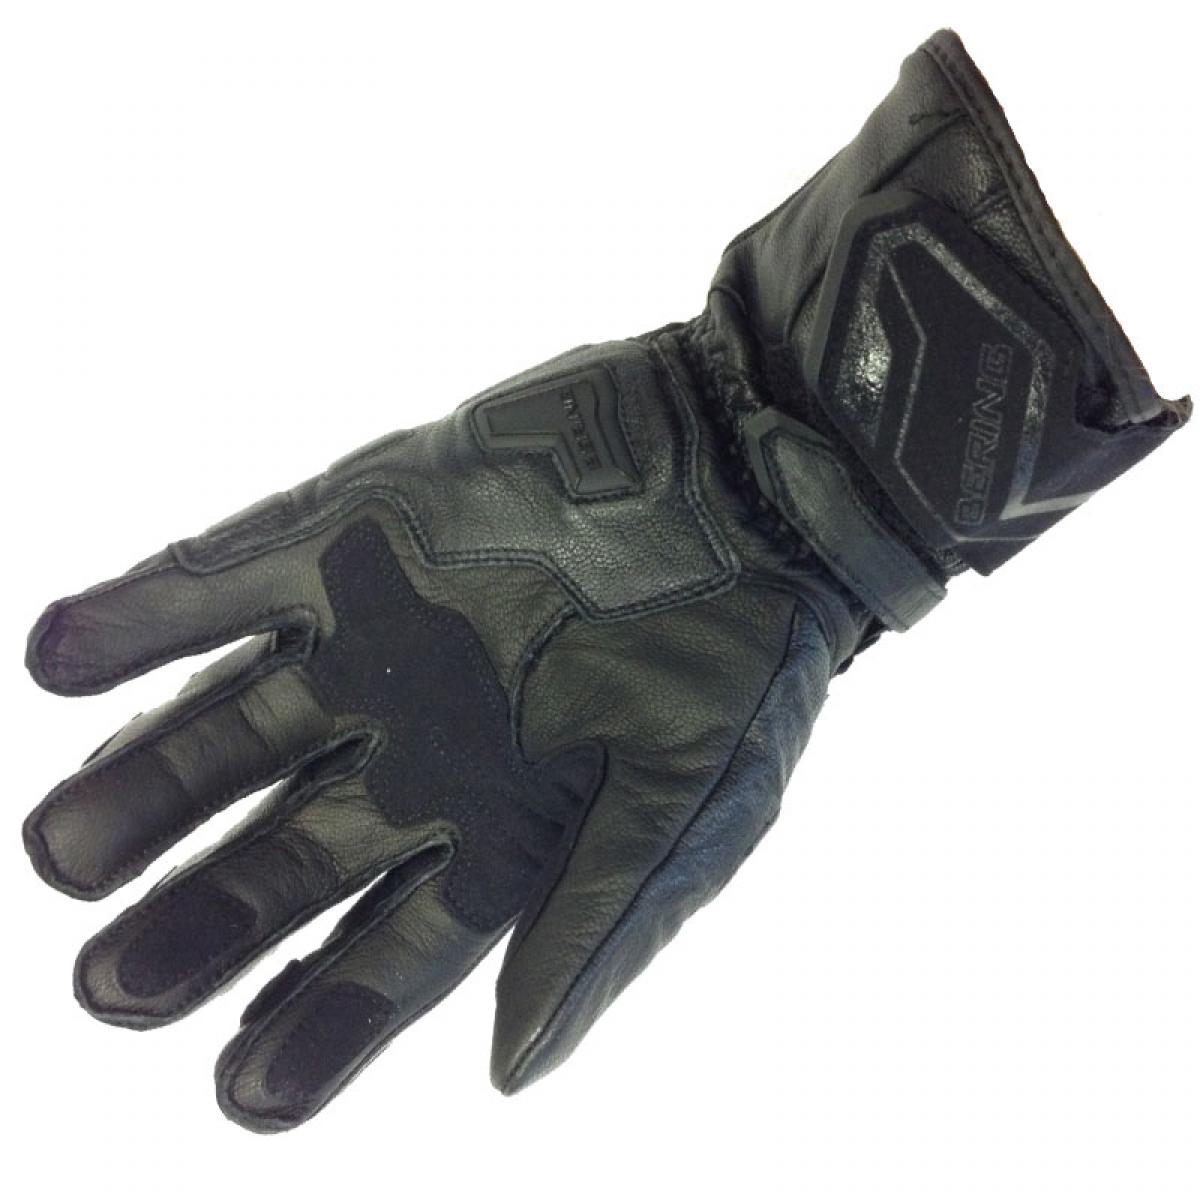 Motorcycle gloves ce approved - Bering Spitfire Leather Ce Approved Race Ready Motorcycle Gloves